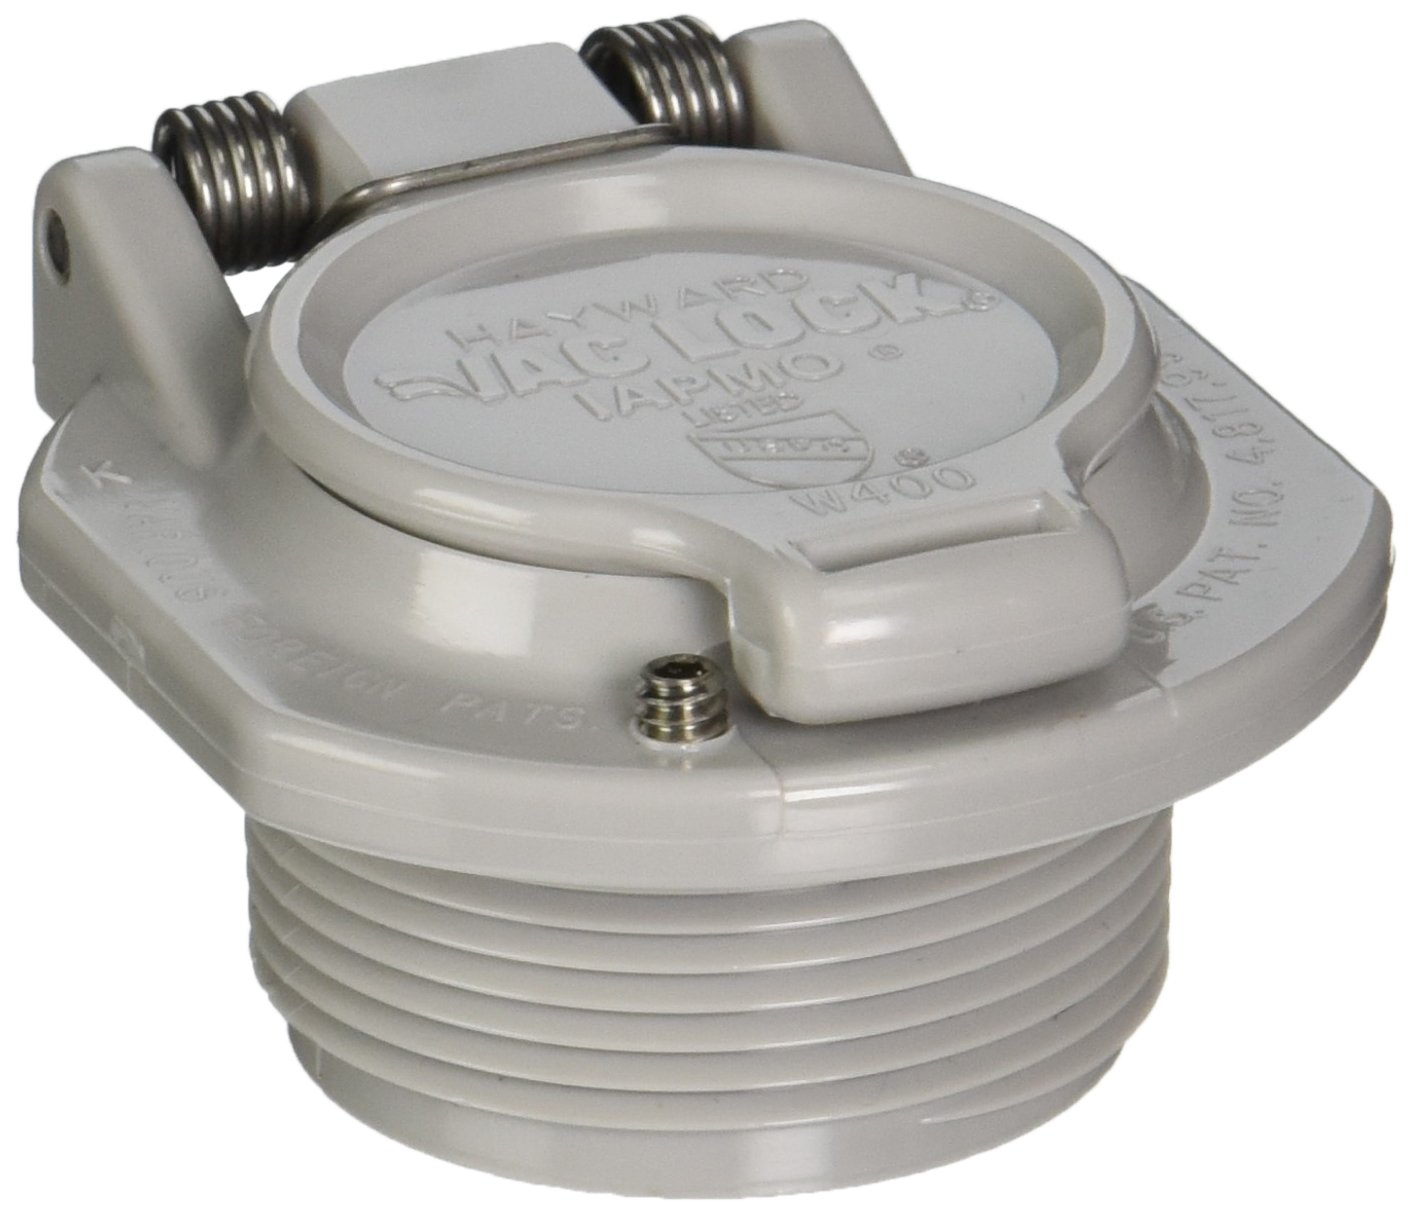 Hayward W400BLGP Light Gray Free Rotation Vacuum Lock Safety Wall Fitting Replacement for Hayward Navigator Pool Cleaners